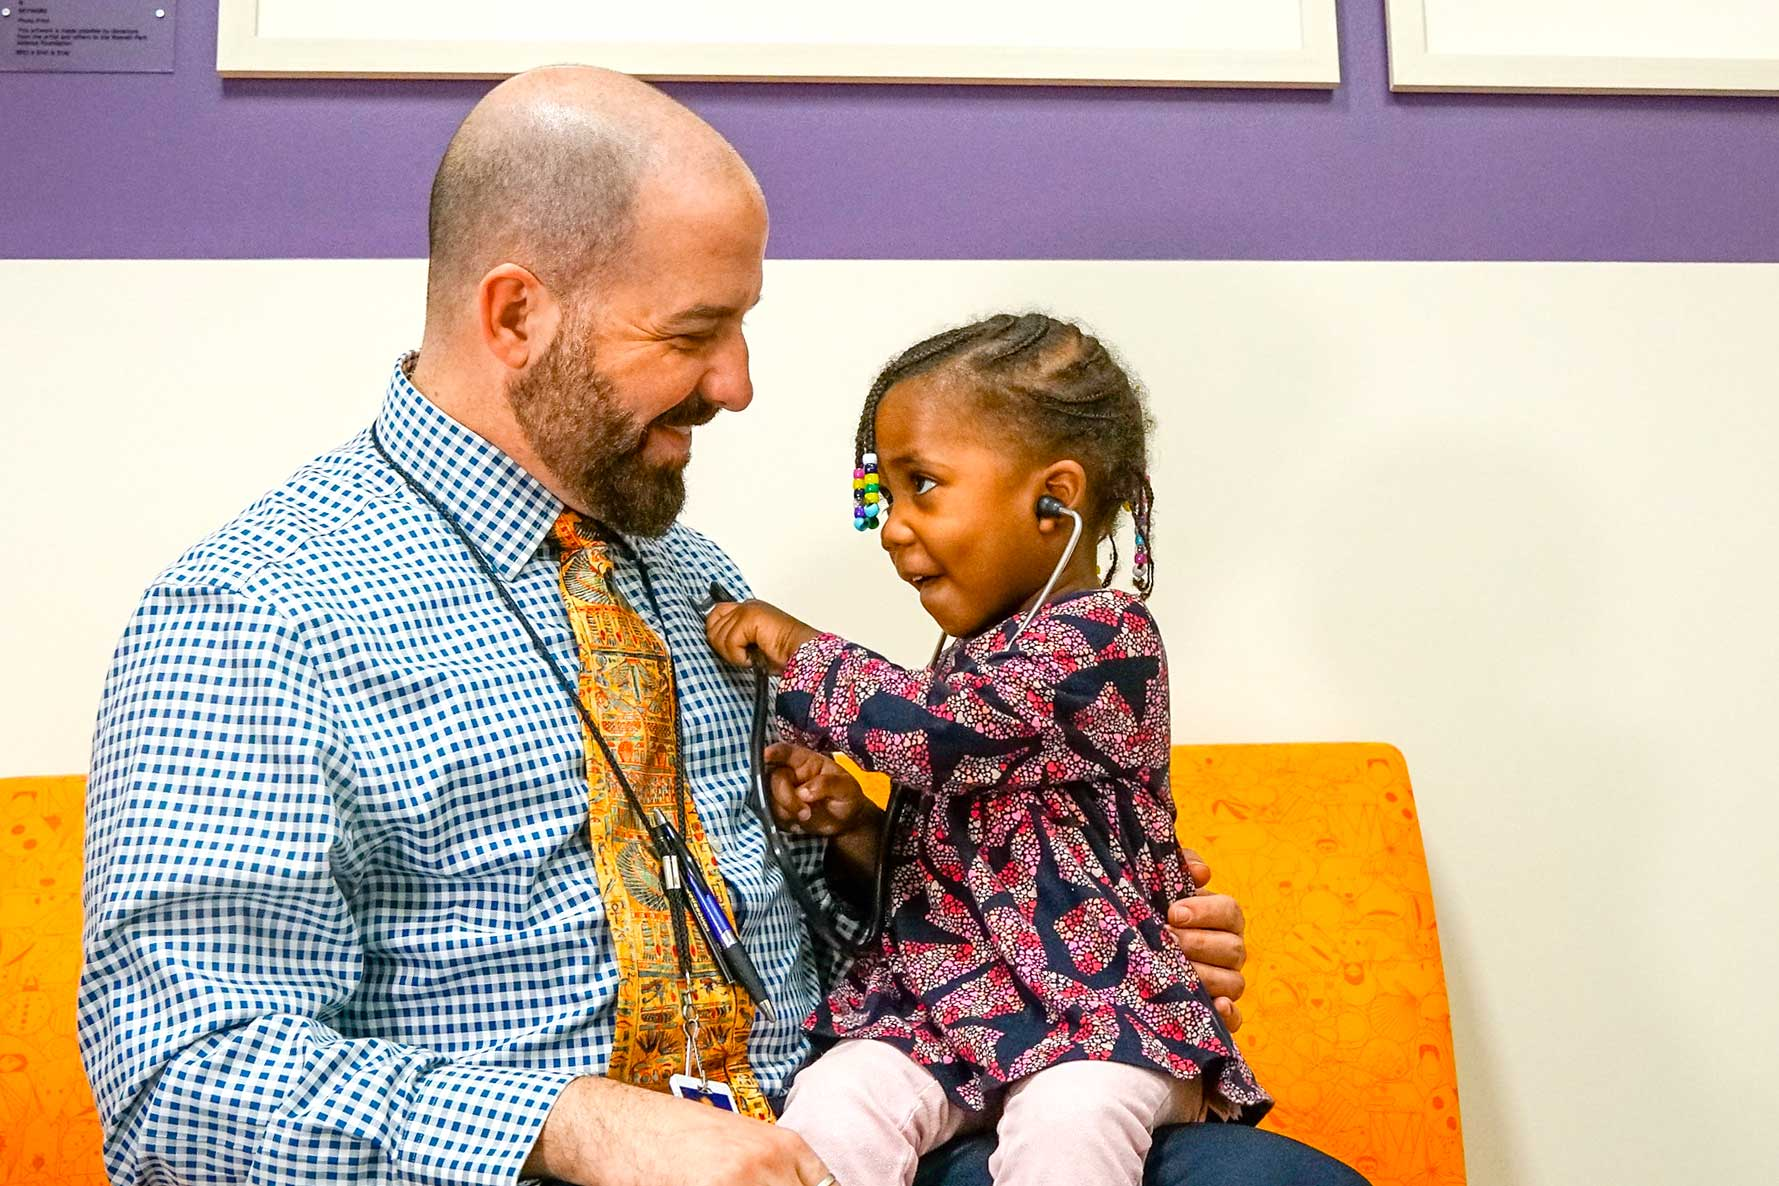 Steve Ambrusko, MD with pediatric patient.